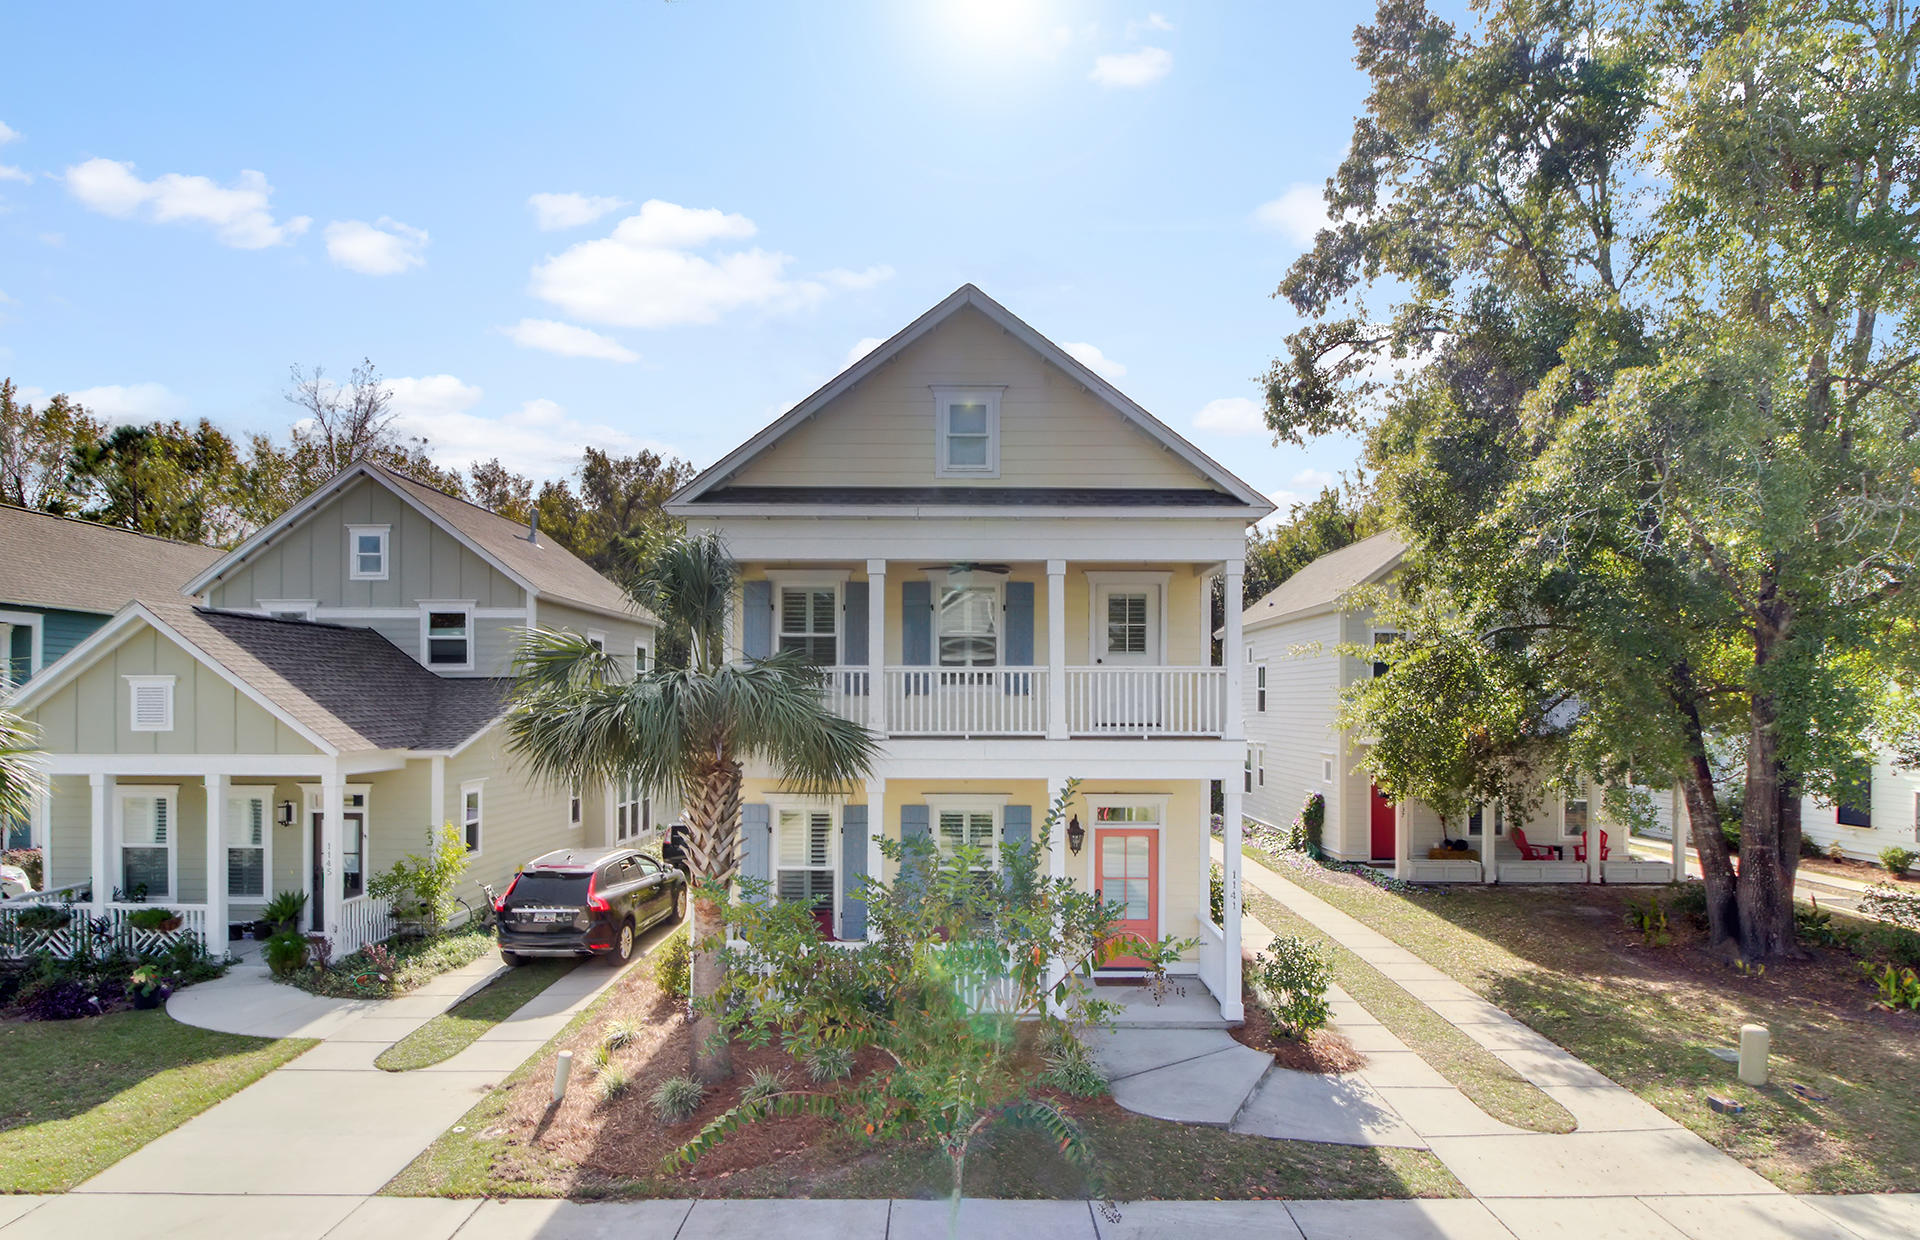 Wexford Park Homes For Sale - 1141 Wexford, Mount Pleasant, SC - 15